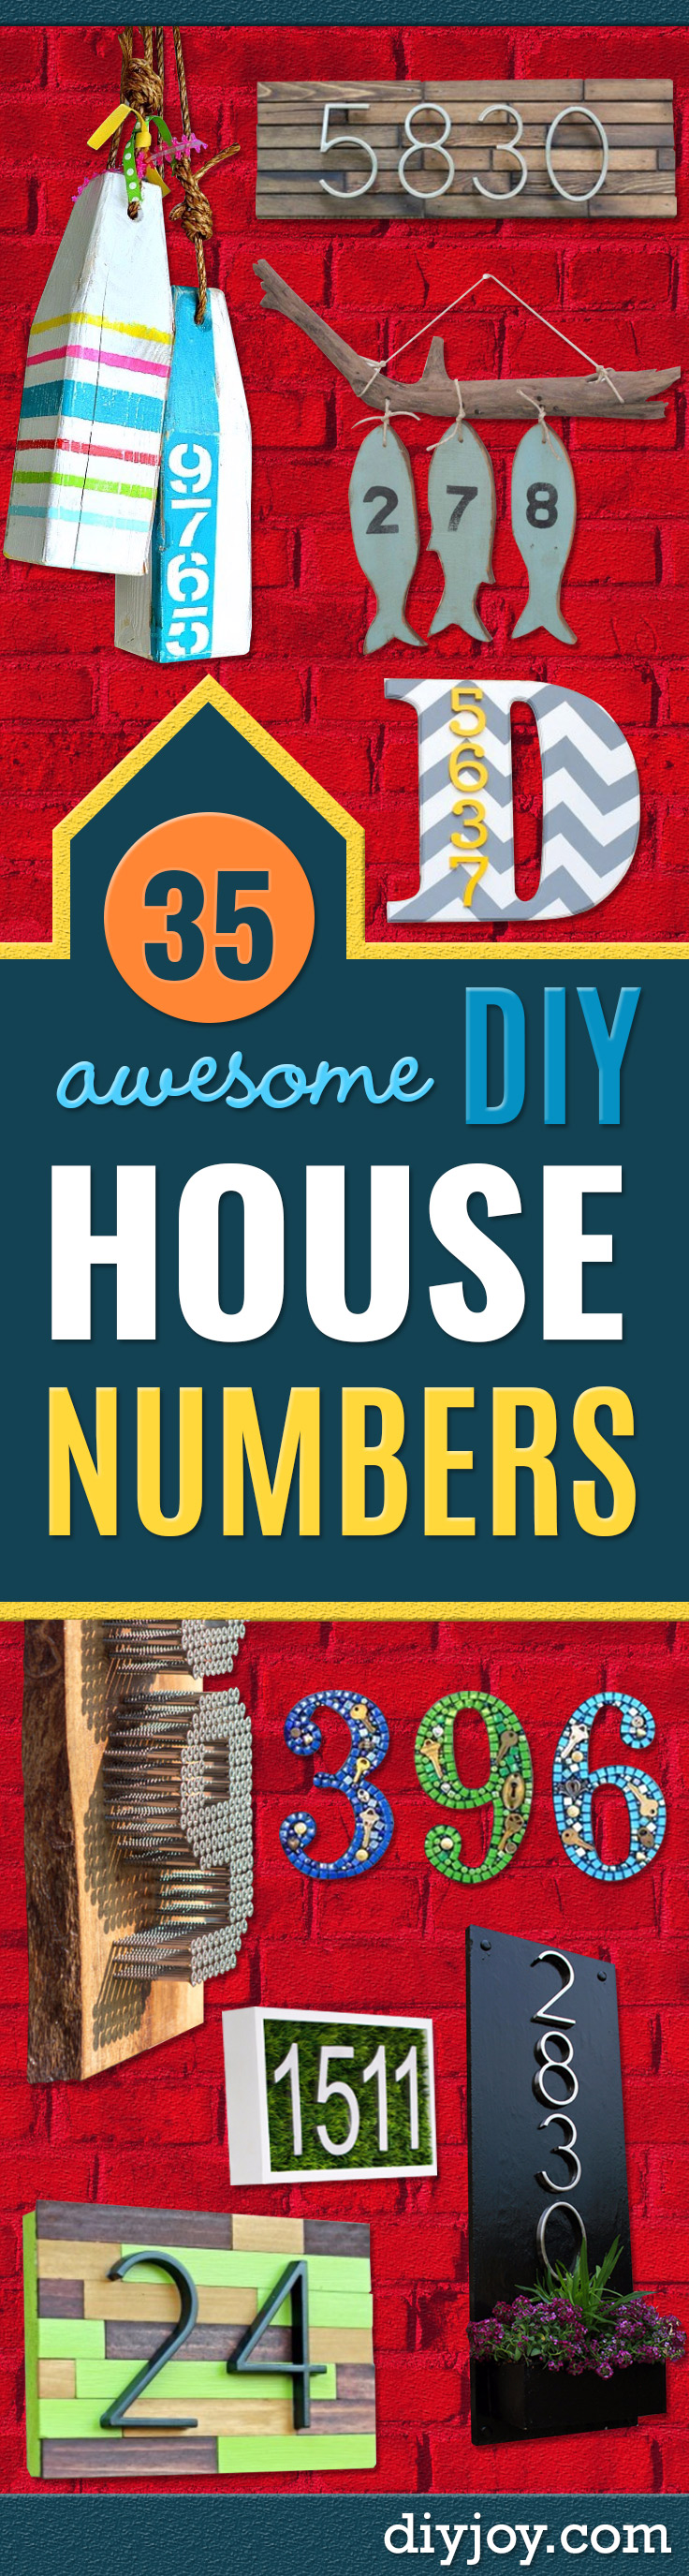 DIY House Numbers - DIY Numbers To Put In Front Yard and At Front Door - Architectural Numbers and Creative Do It Yourself Projects for Making House Numbers - Easy Step by Step Tutorials and Project Ideas for Home Improvement on A Budget